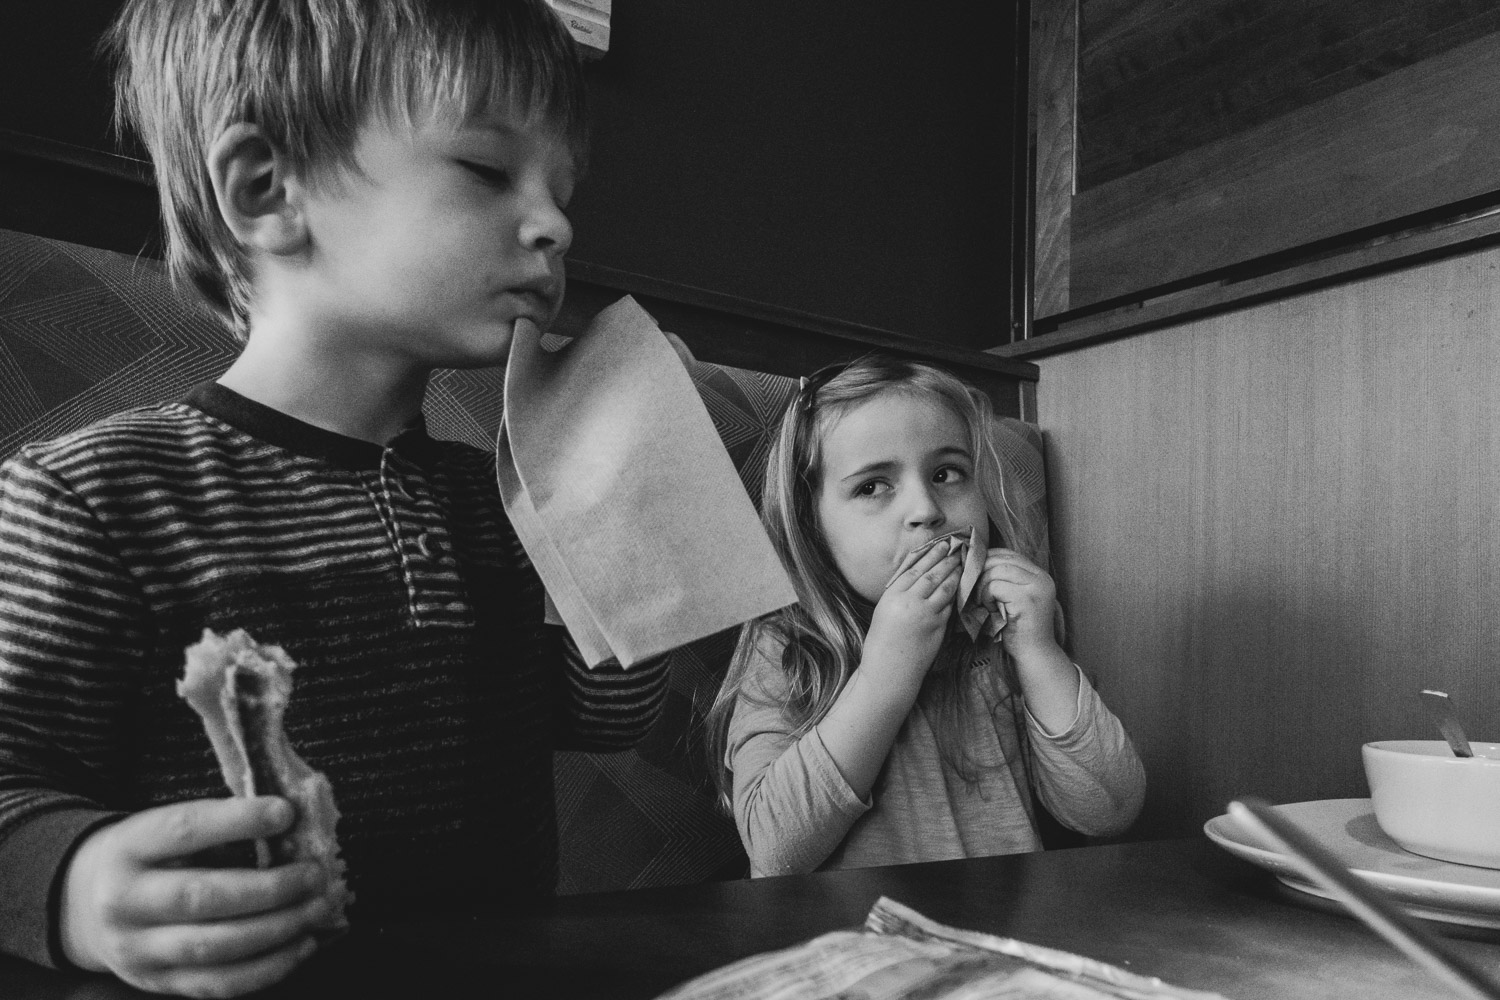 Children wiping their mouths with napkins at Panera Bread.